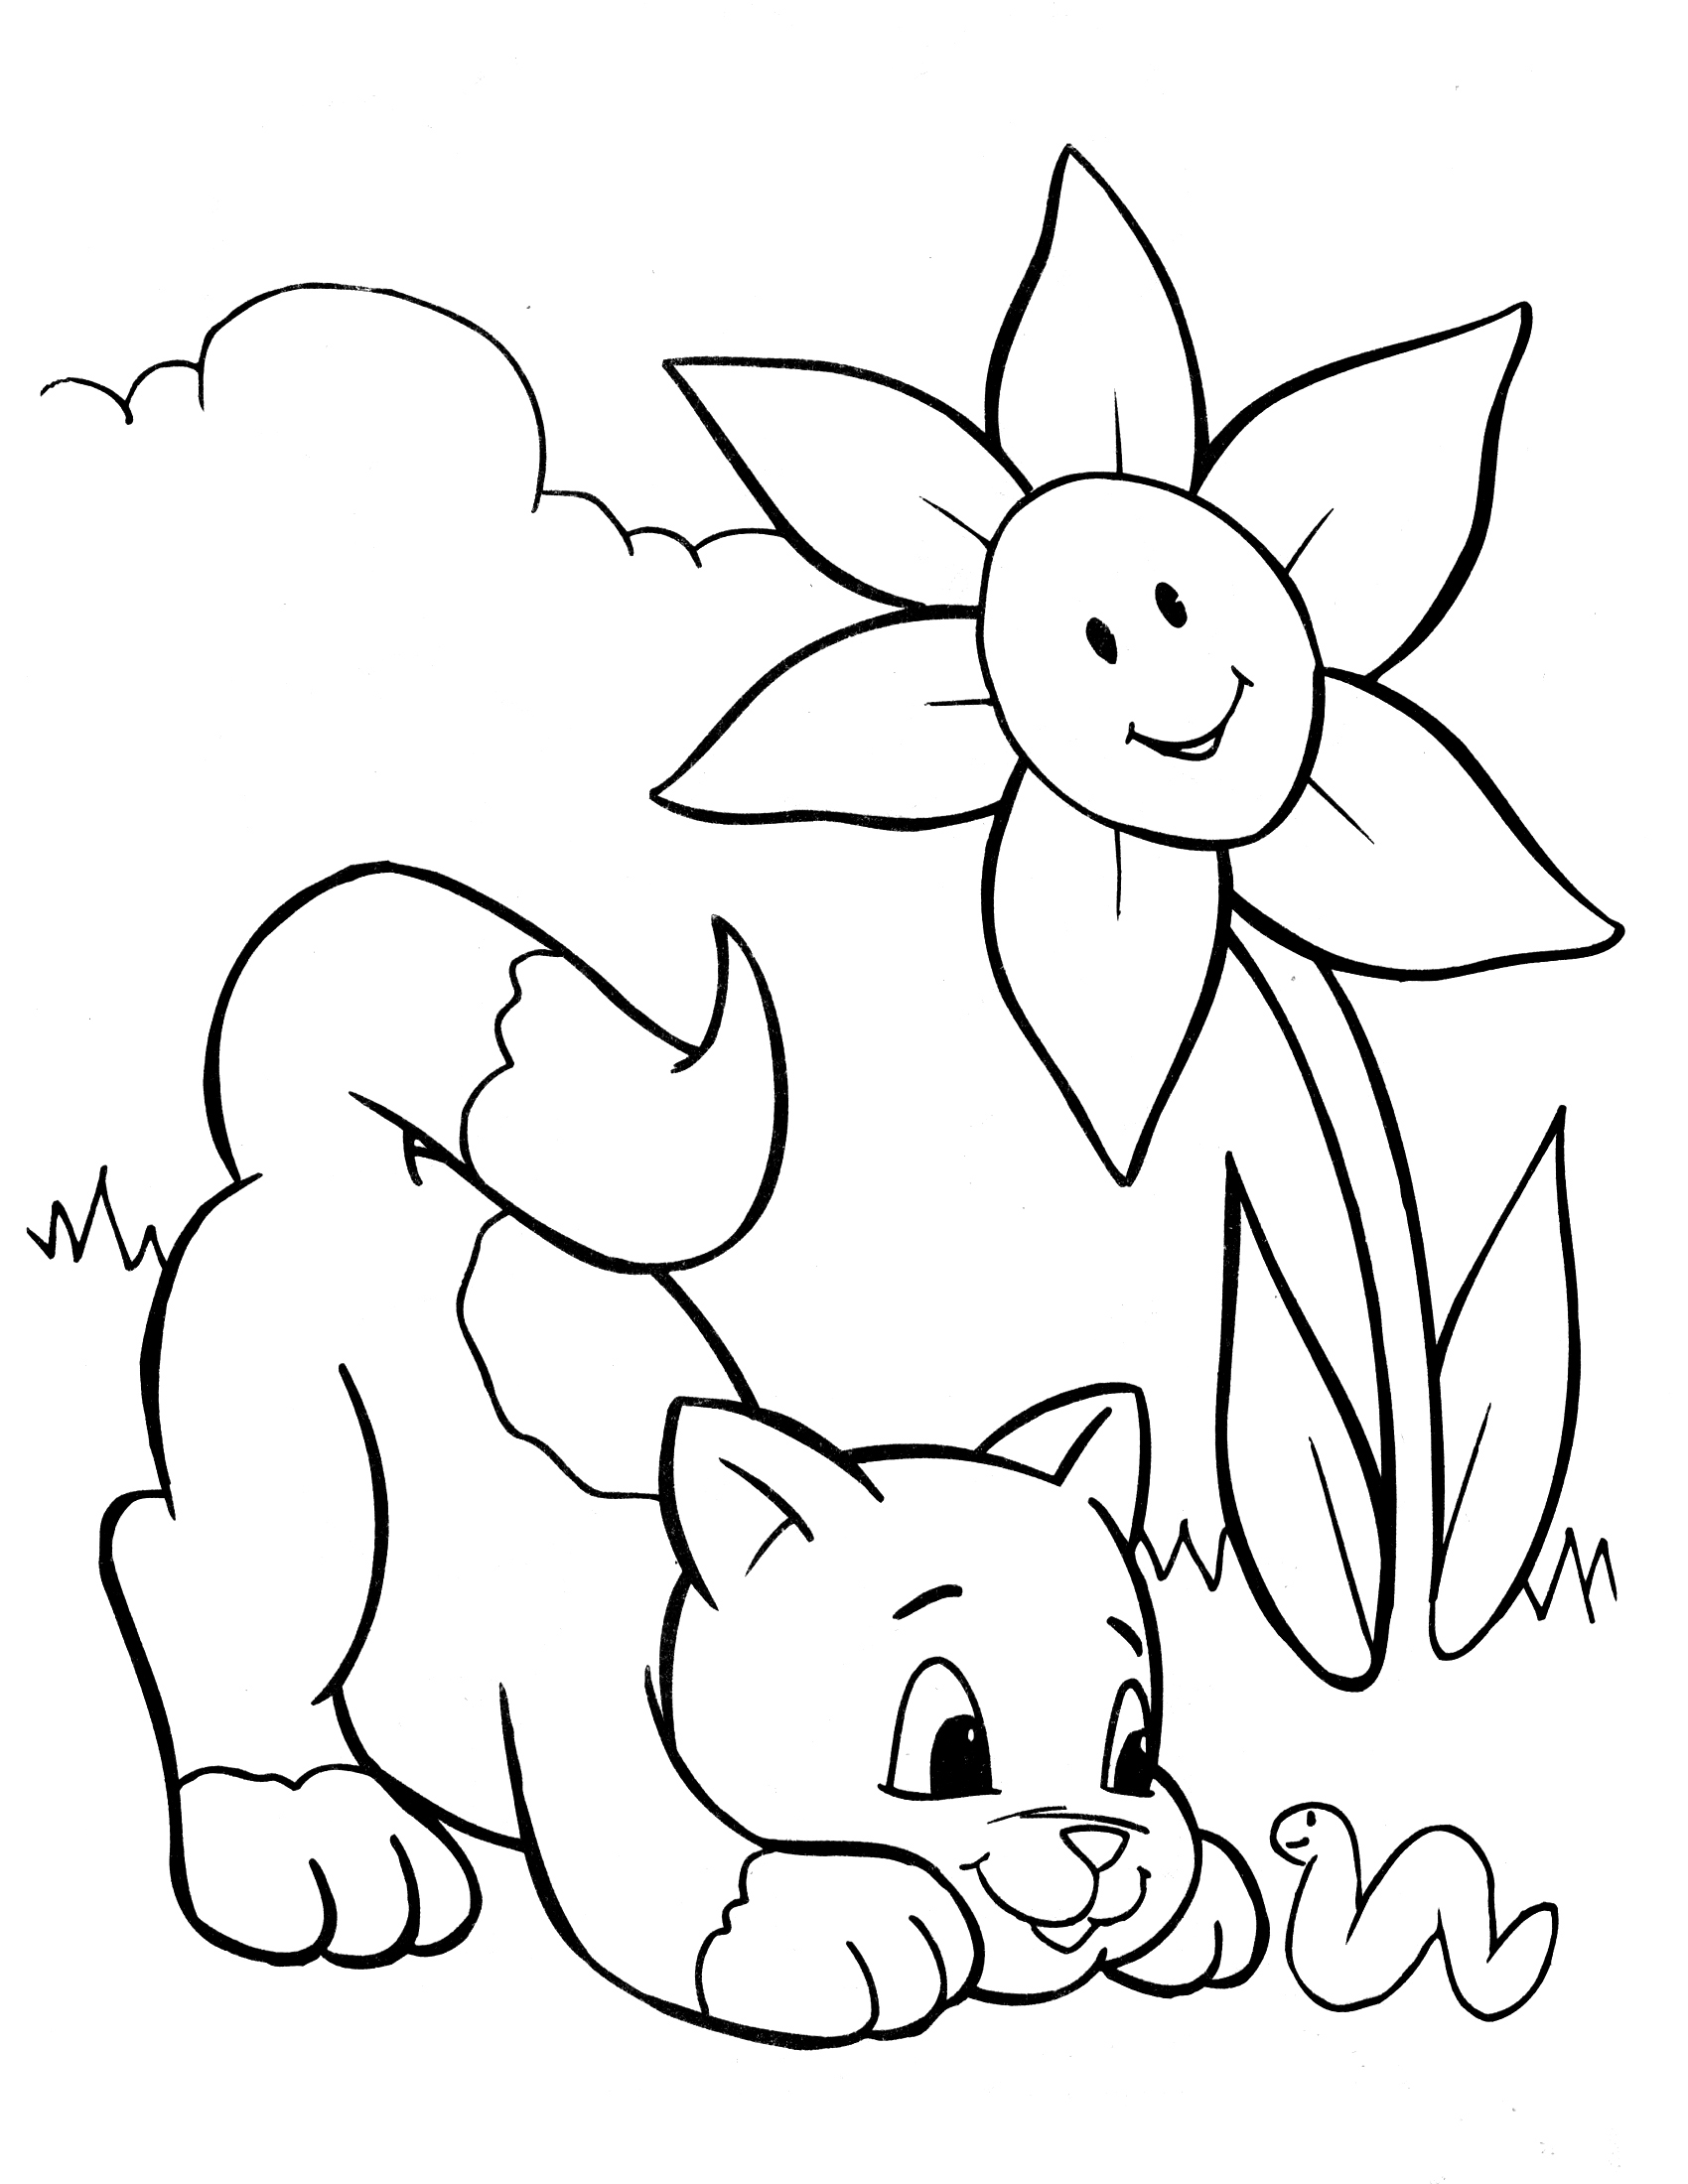 online crayola coloring pages - photo#20